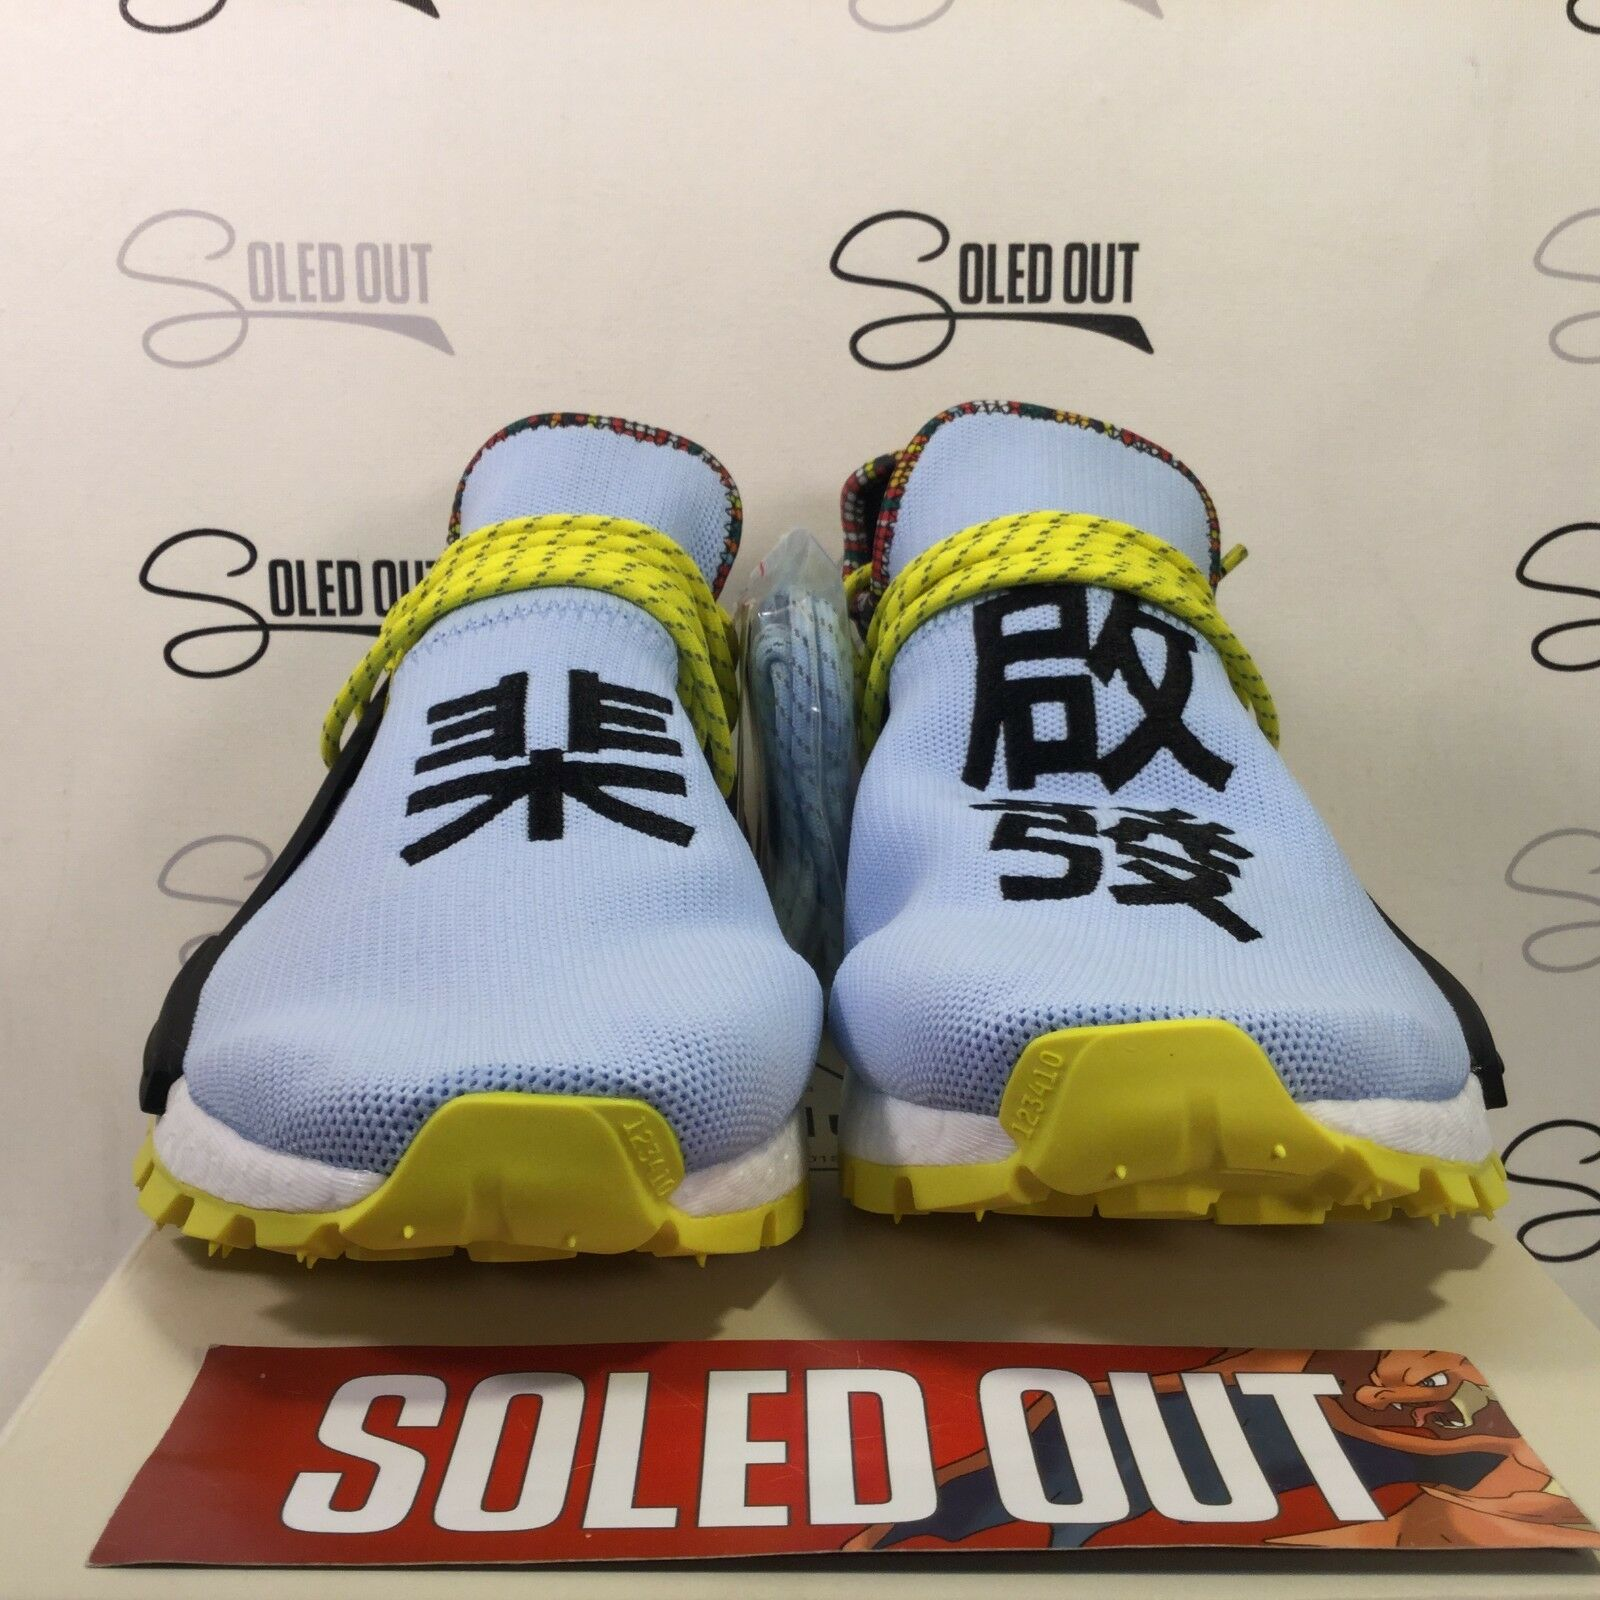 """6e4dc34ee82 ADIDAS PW HU NMD CLEAR SKY"""" 2018 ITEM 4307-167 SOLAR NUMBER ..."""